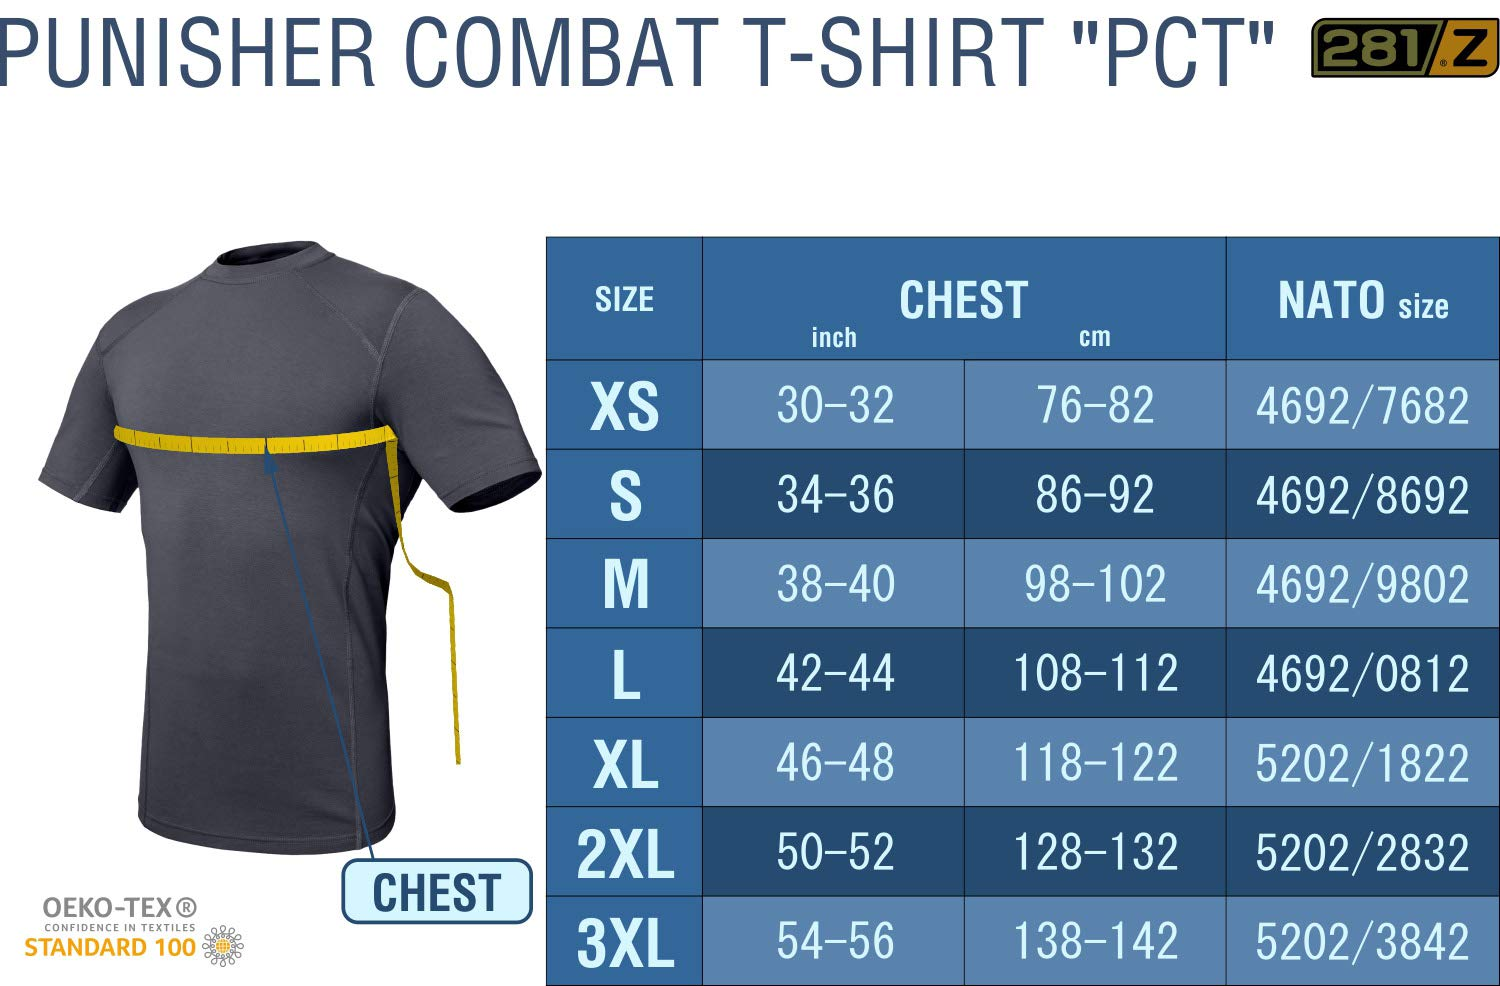 281Z Military Stretch Cotton Underwear T-Shirt - Tactical Hiking Outdoor - Punisher Combat Line (Graphite, Large) by 281Z (Image #6)